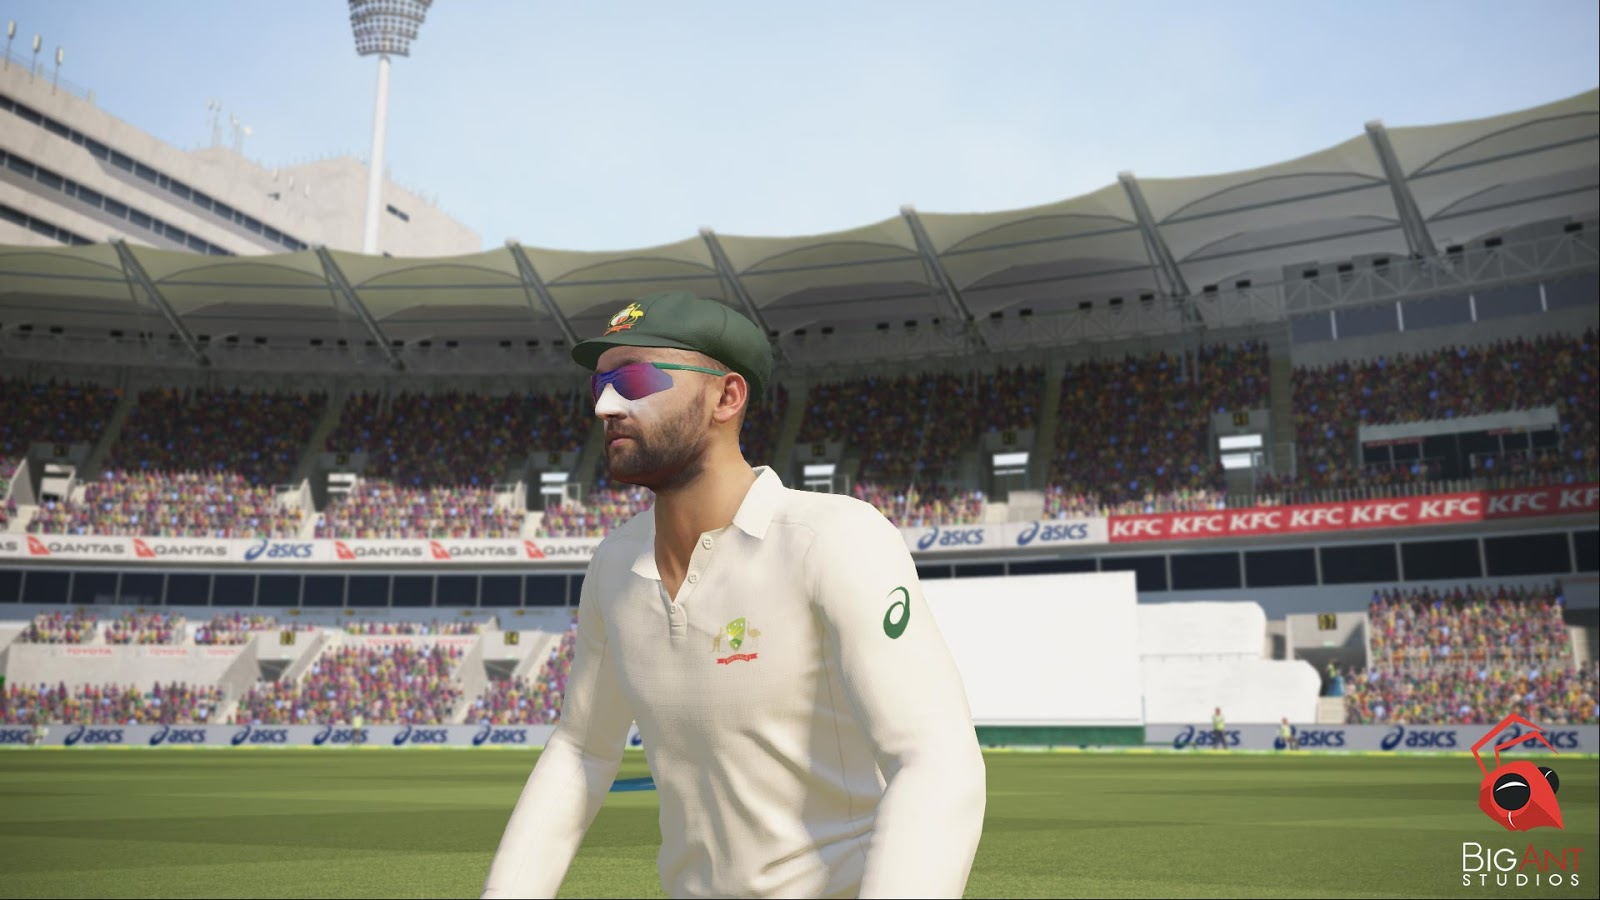 Ashes Cricket - Free Download